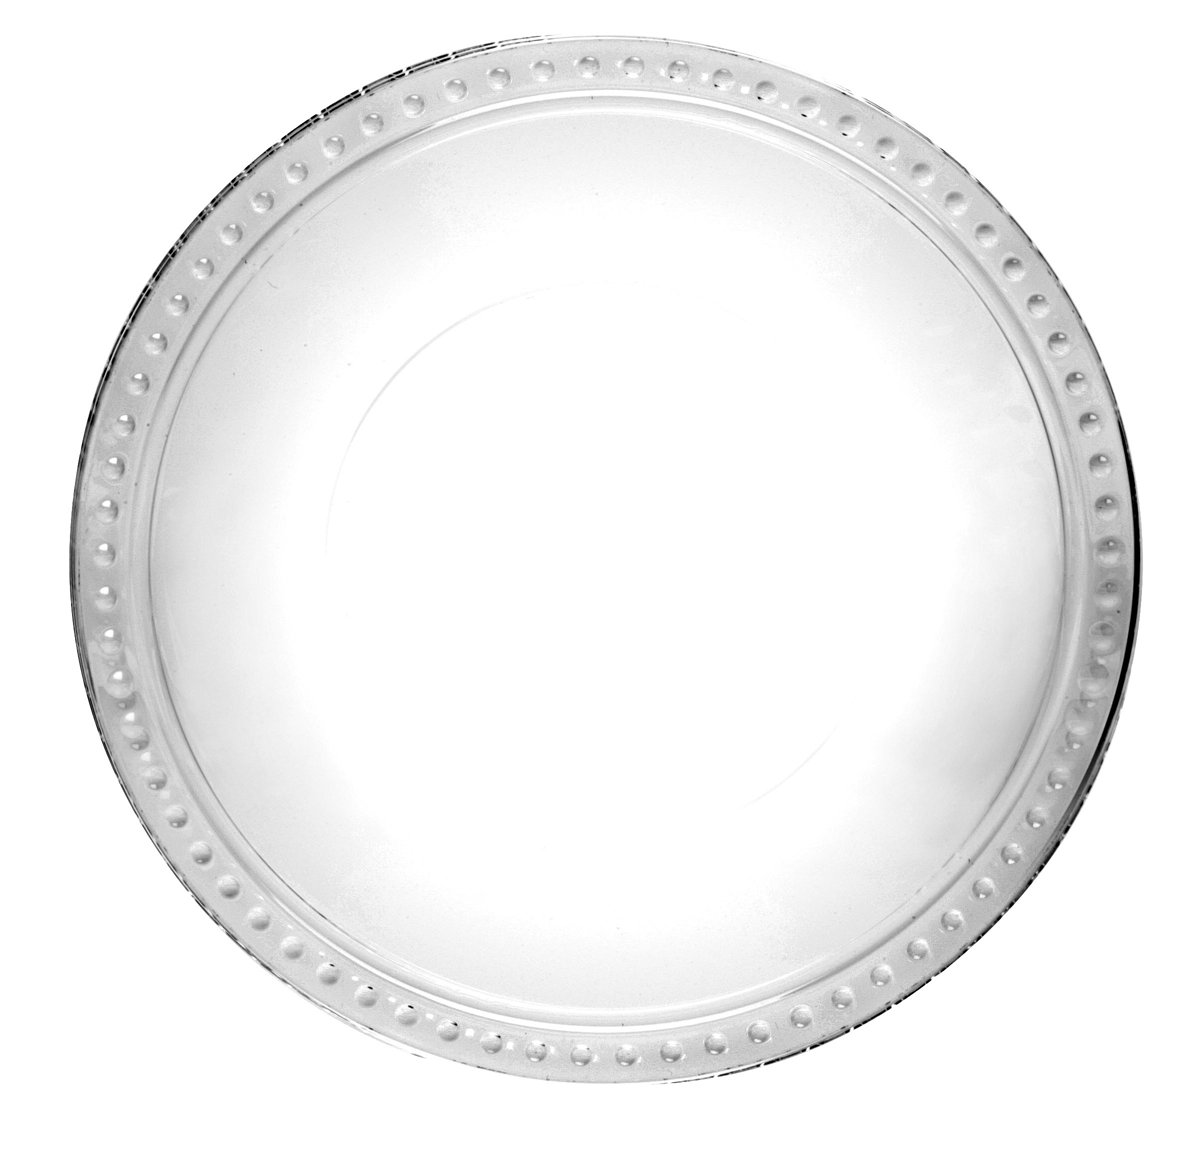 Anchor Hocking 13-Inch Isabella Platter, Set of 6